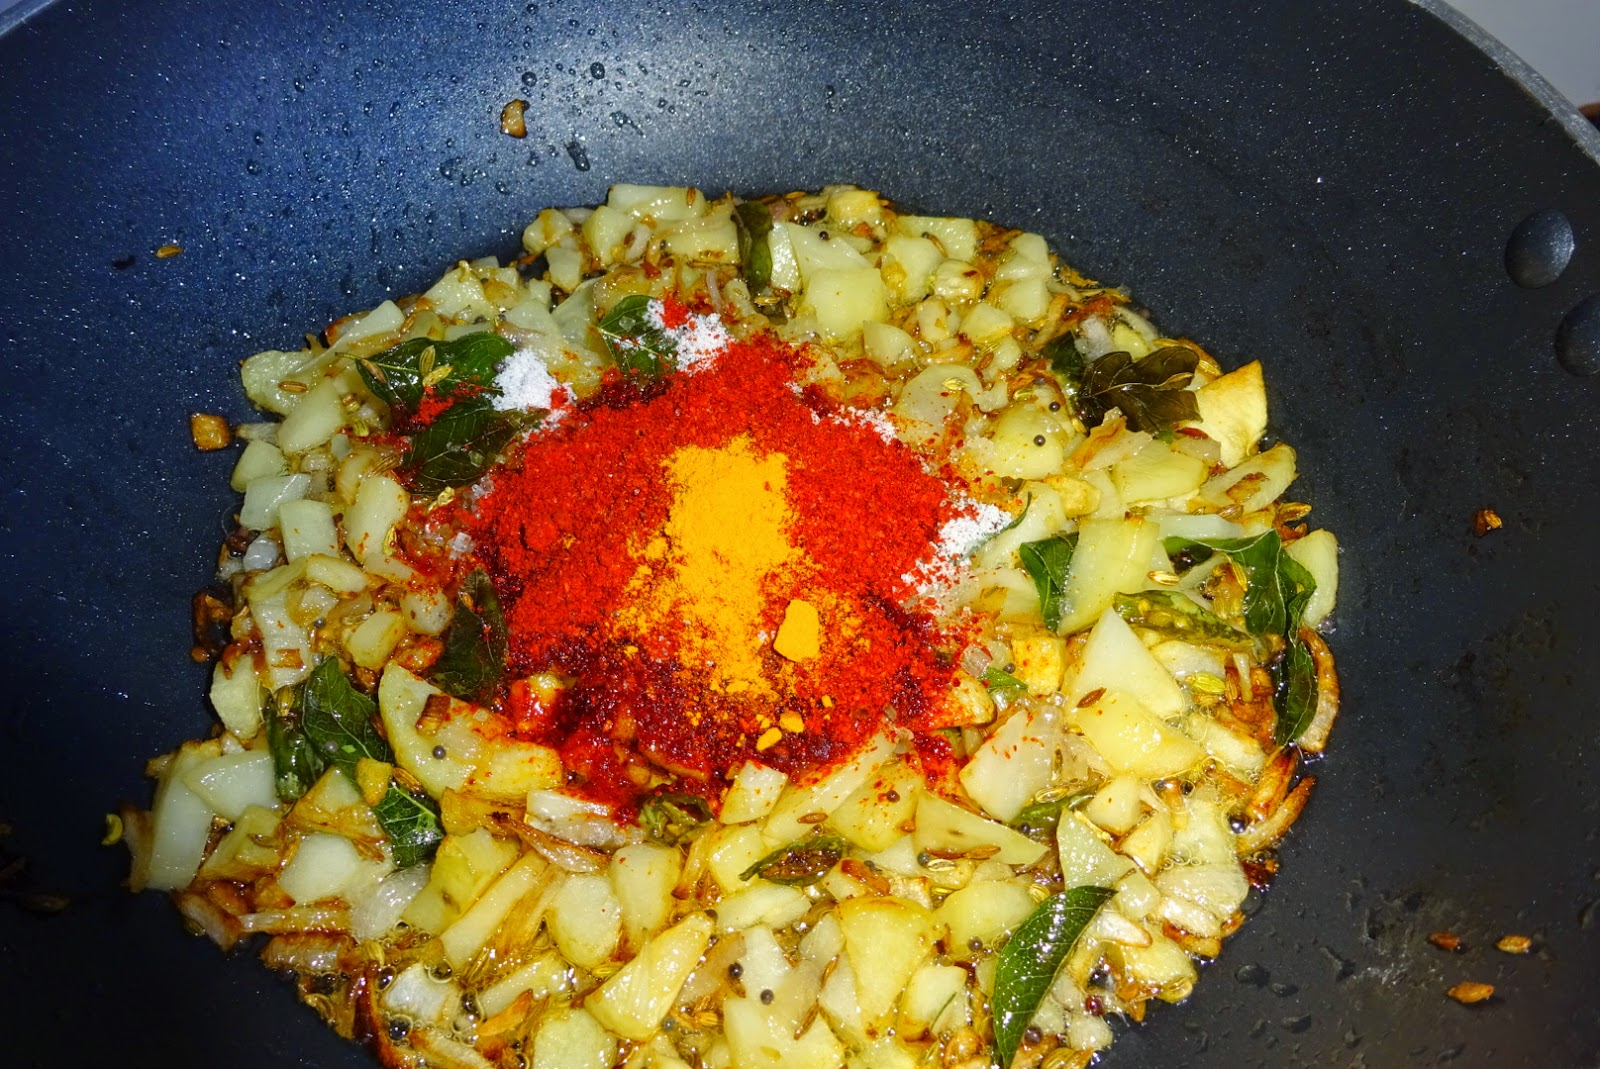 http://vegindiancooking121212.blogspot.in/2014/09/aloo-kanda-poha-potato-and-onion.html